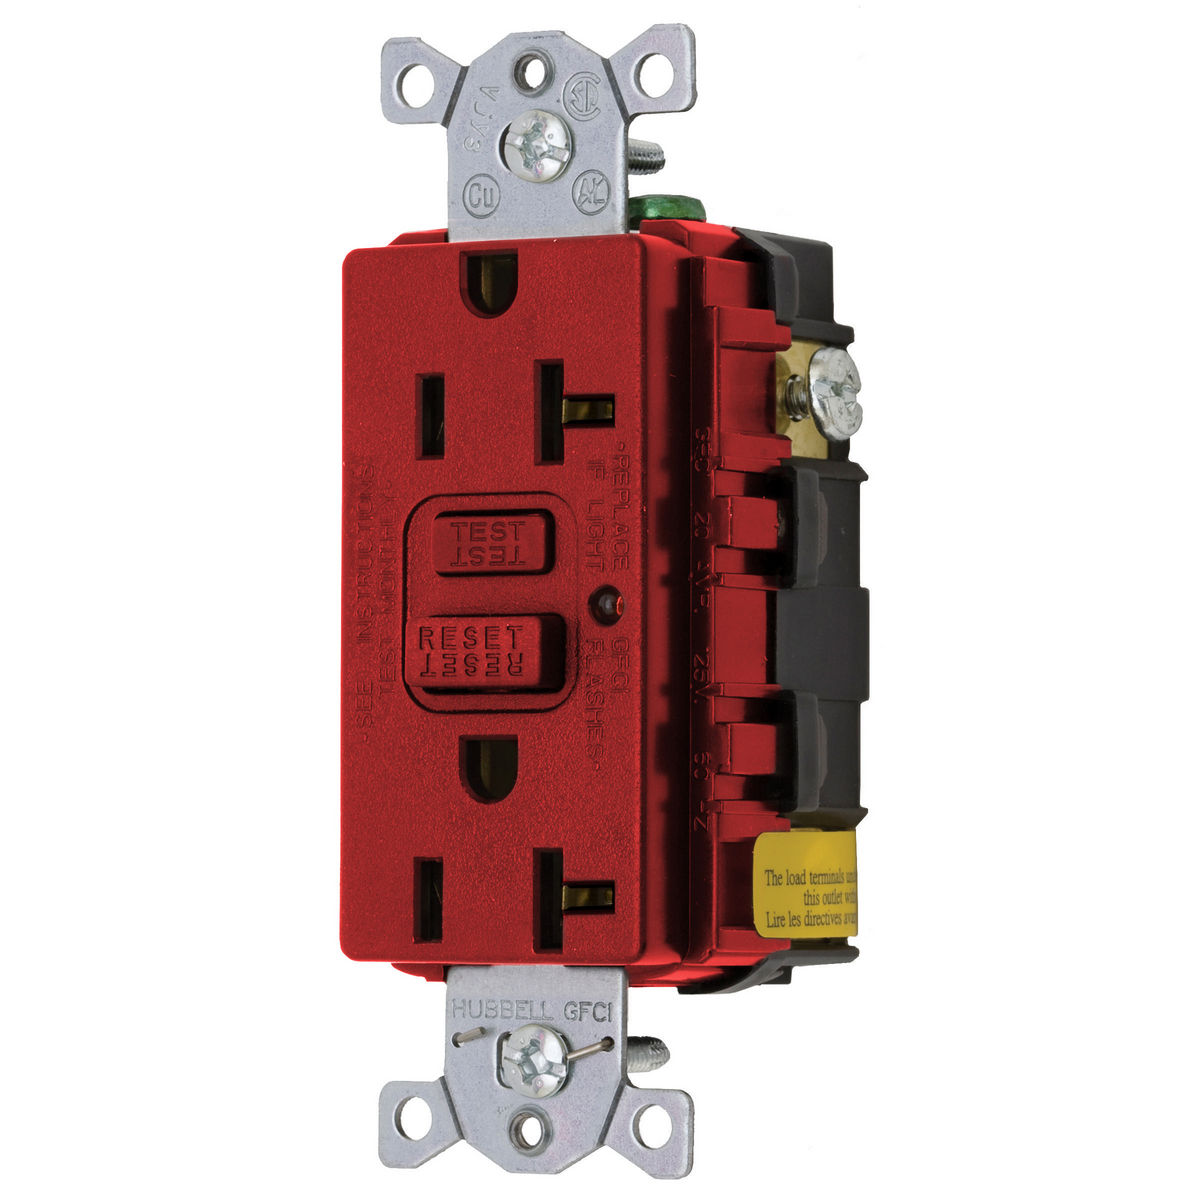 Hubbell GF20RLA 20 Amp 125 Volt 2-Pole 3-Wire NEMA 5-20R Red GFCI Receptacle with LED Indicator